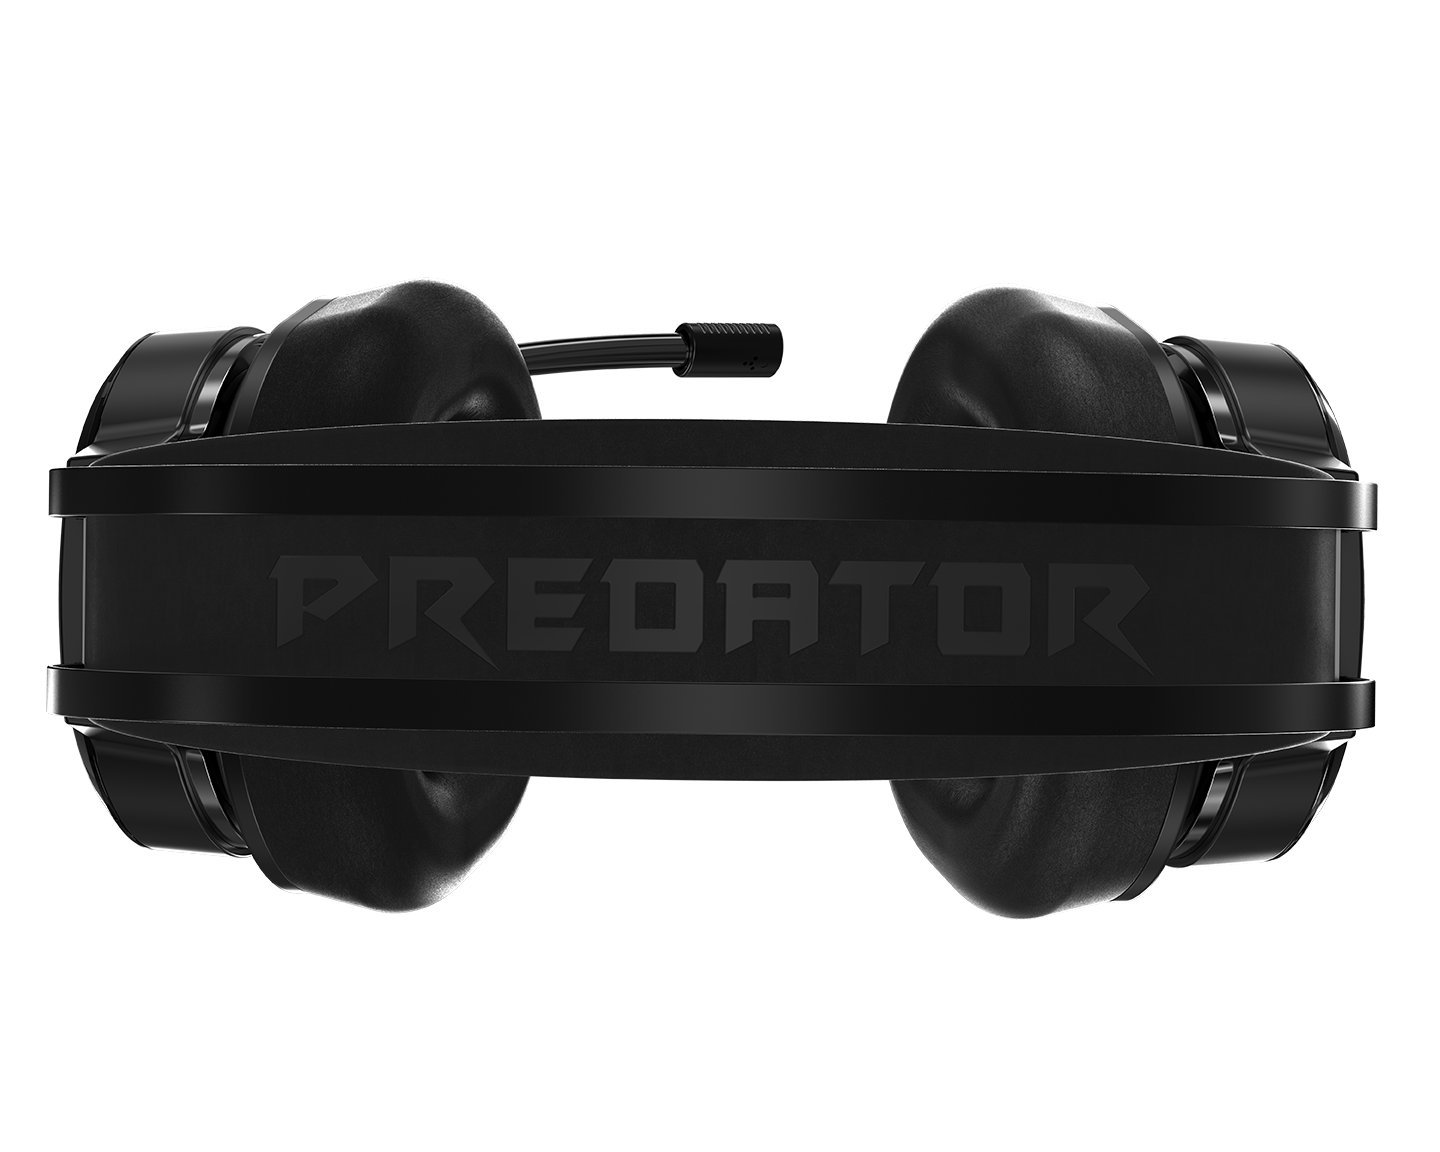 Acer Predator Galea 300 Gaming Headset - TrueHarmony Technology, 40mm Driver Bio-Cellulose, Retractable Omni-Directional Microphone Acer Computer PHW810